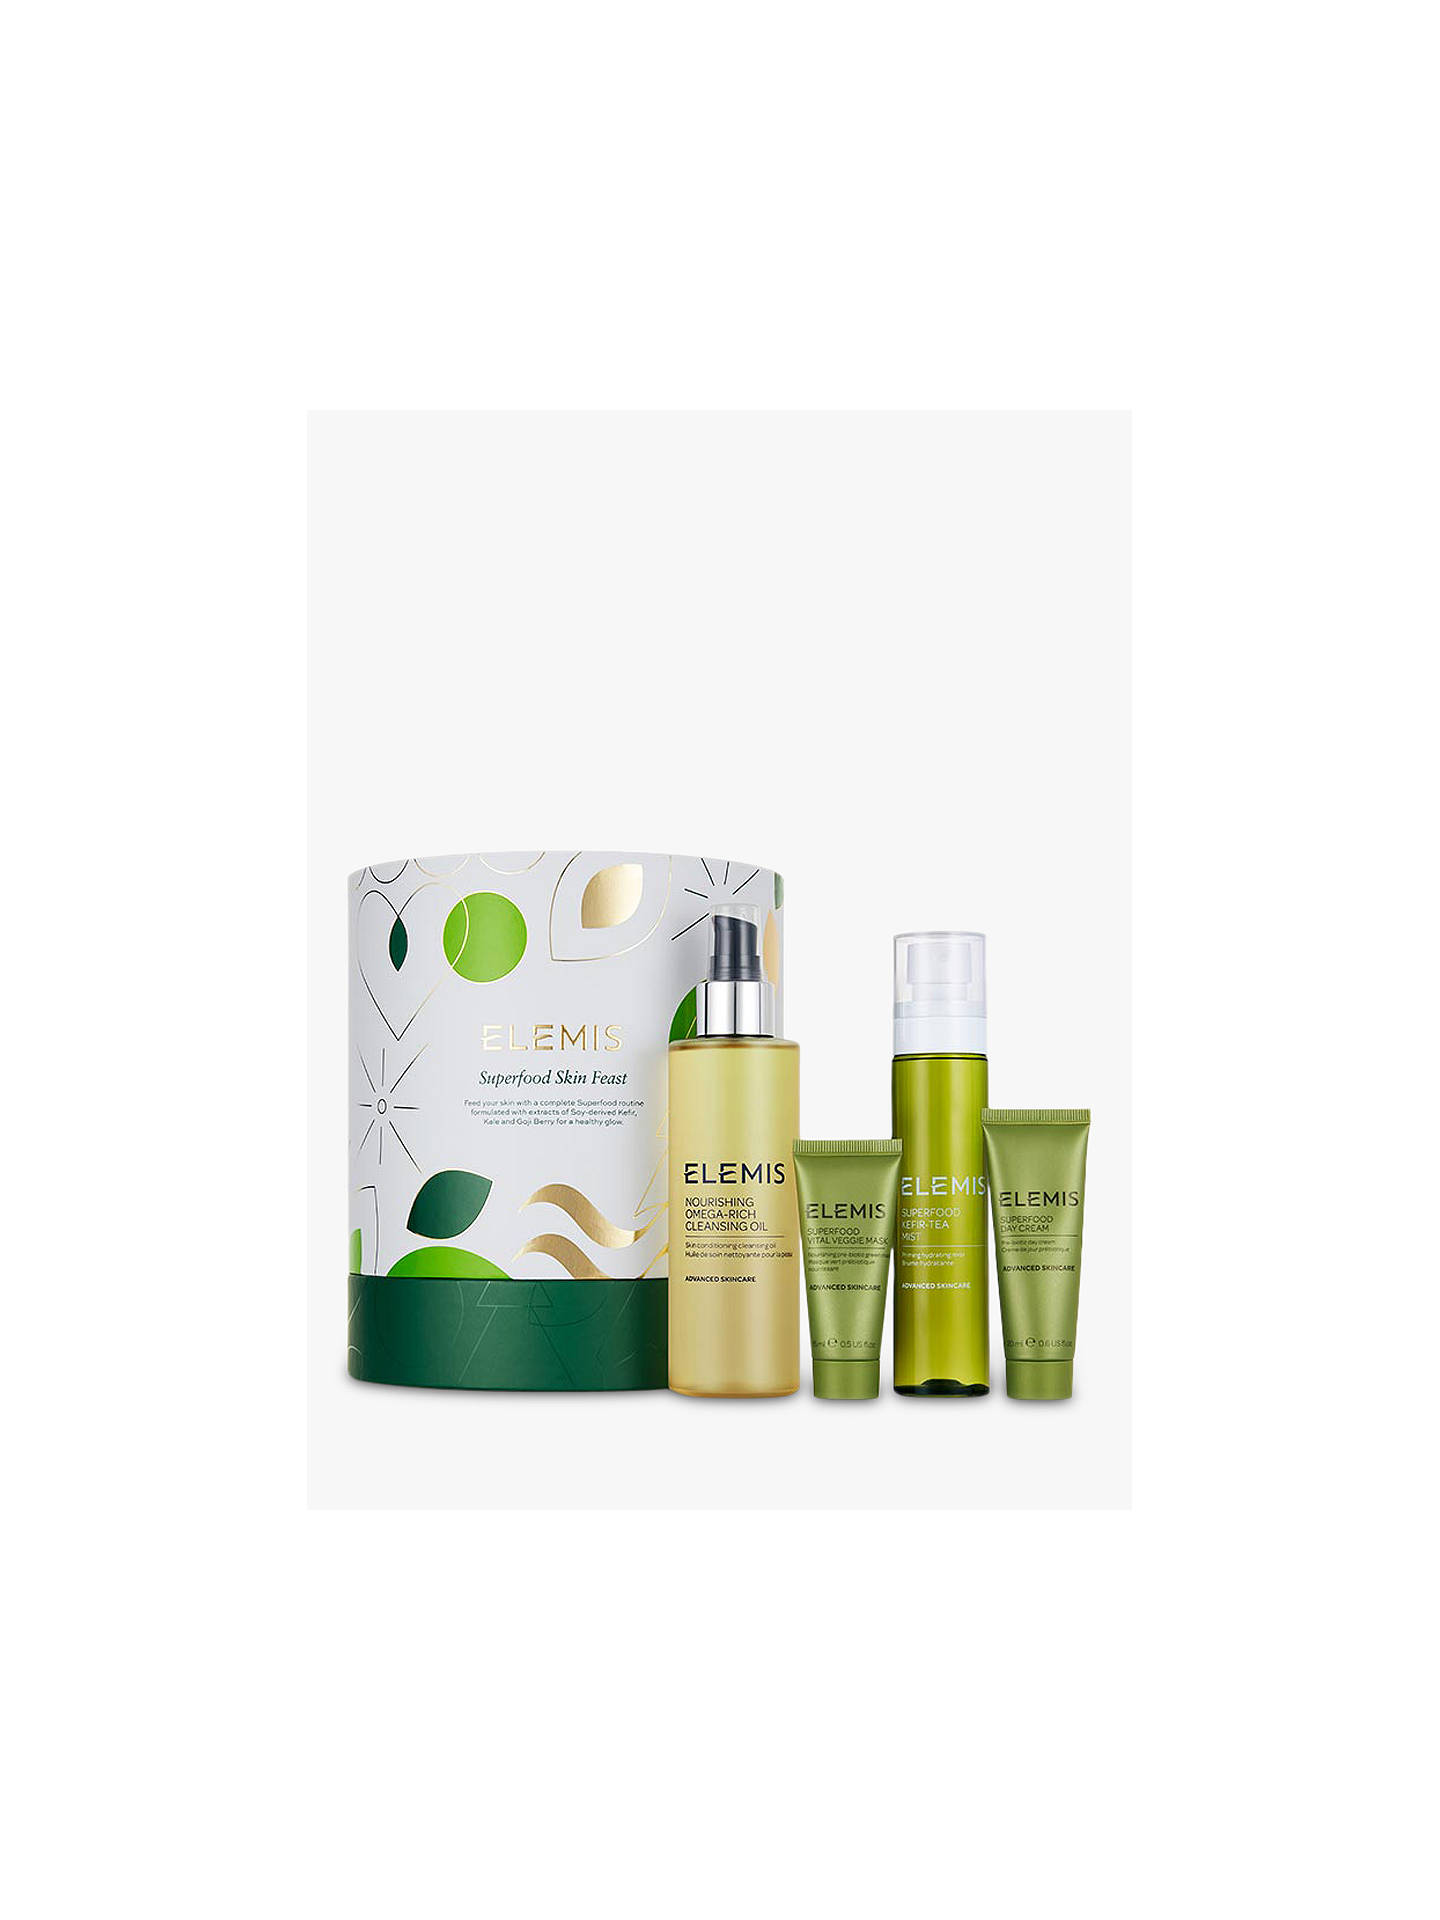 Elemis Superfood Skin Feast Skincare Gift Set by Elemis